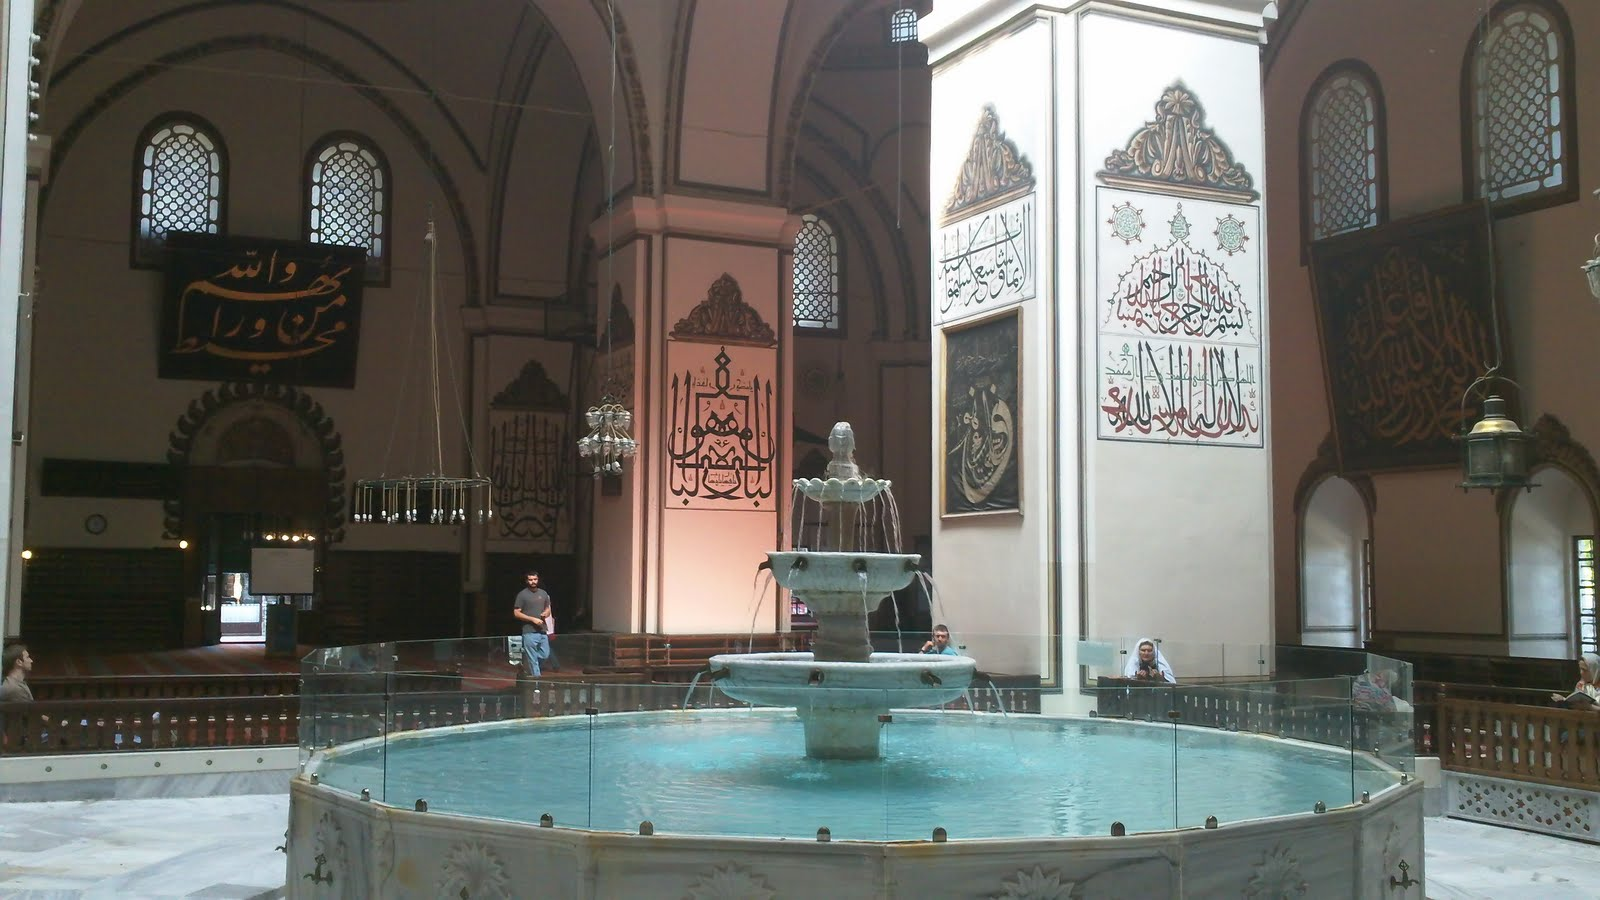 The Fountain of Bursa: Creativity and Responsibility in Scholarship